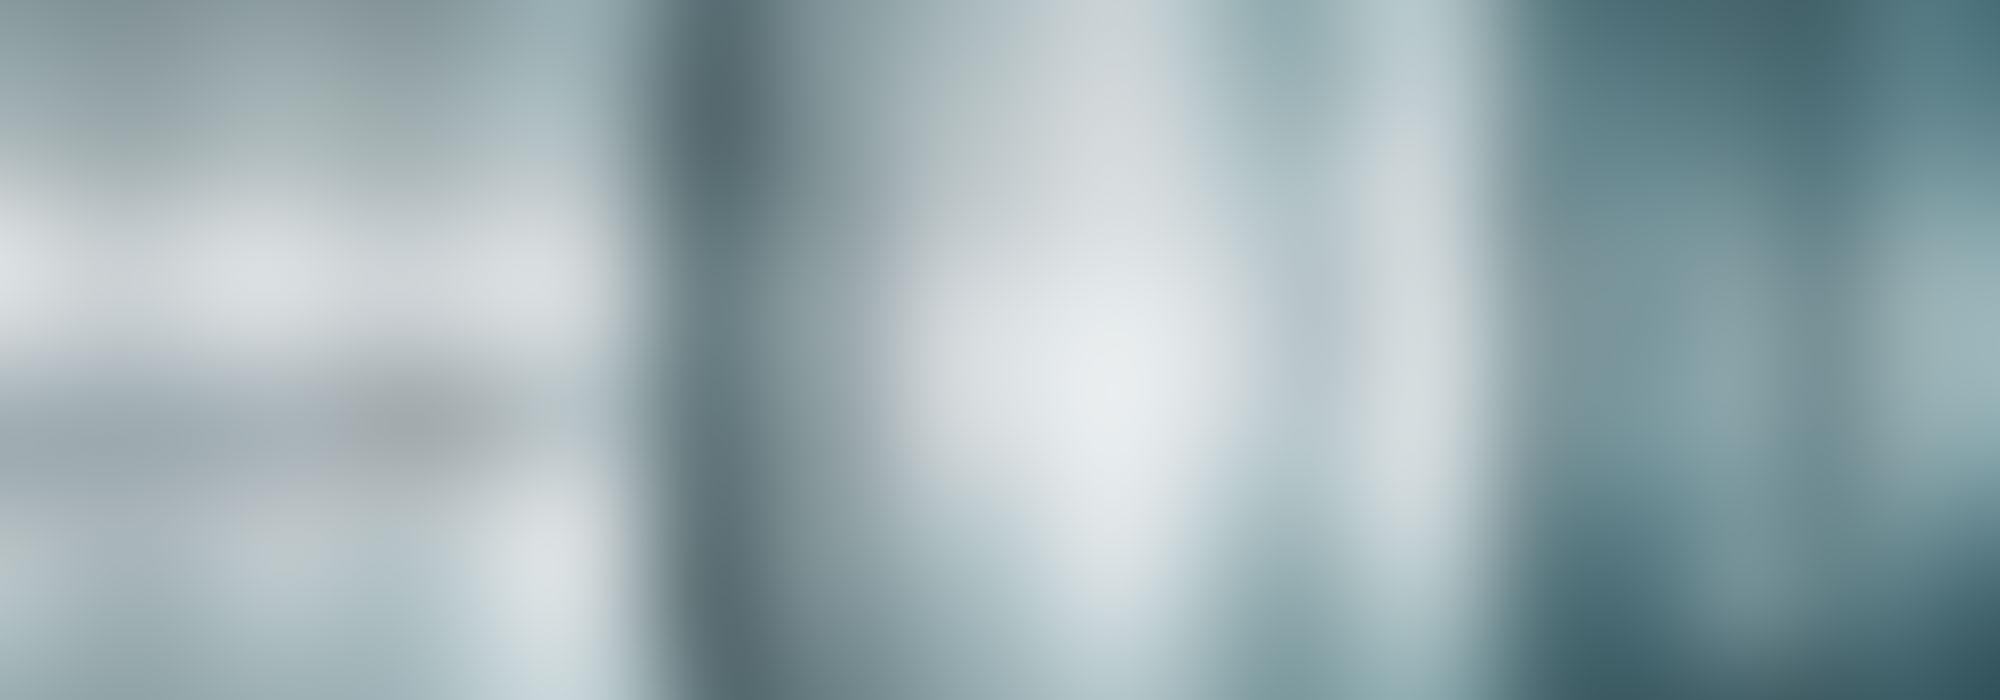 background-1